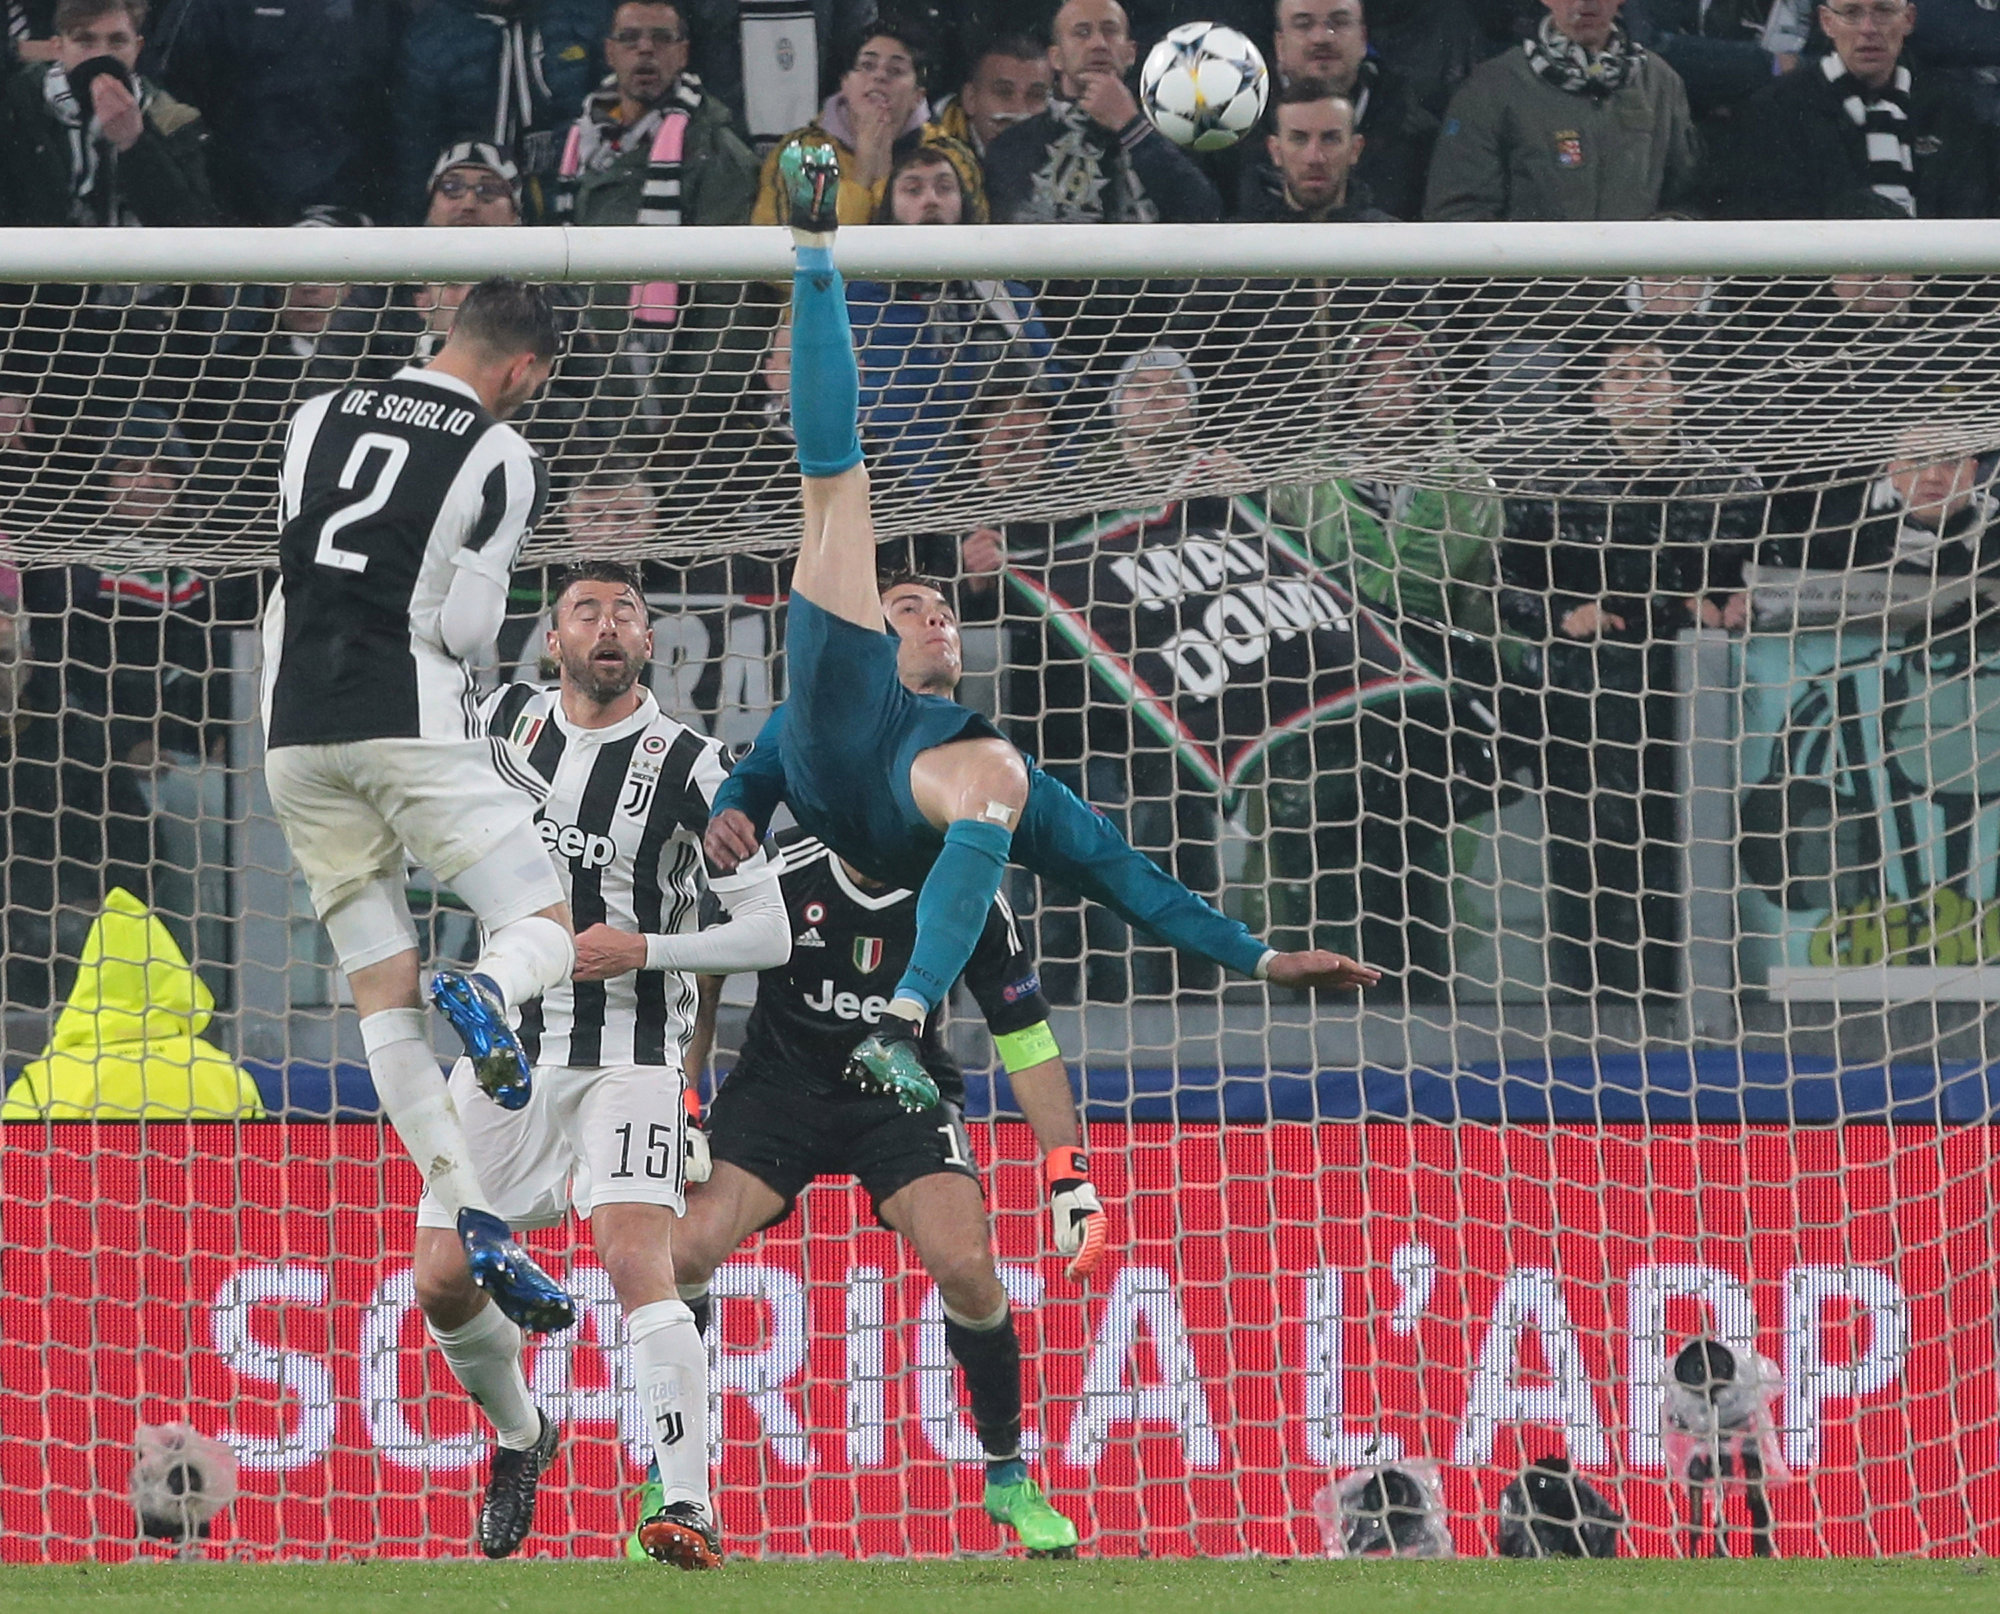 Ronaldo S Bicycle Kick Sends Juventus Stock To Eight Month Low Bloomberg